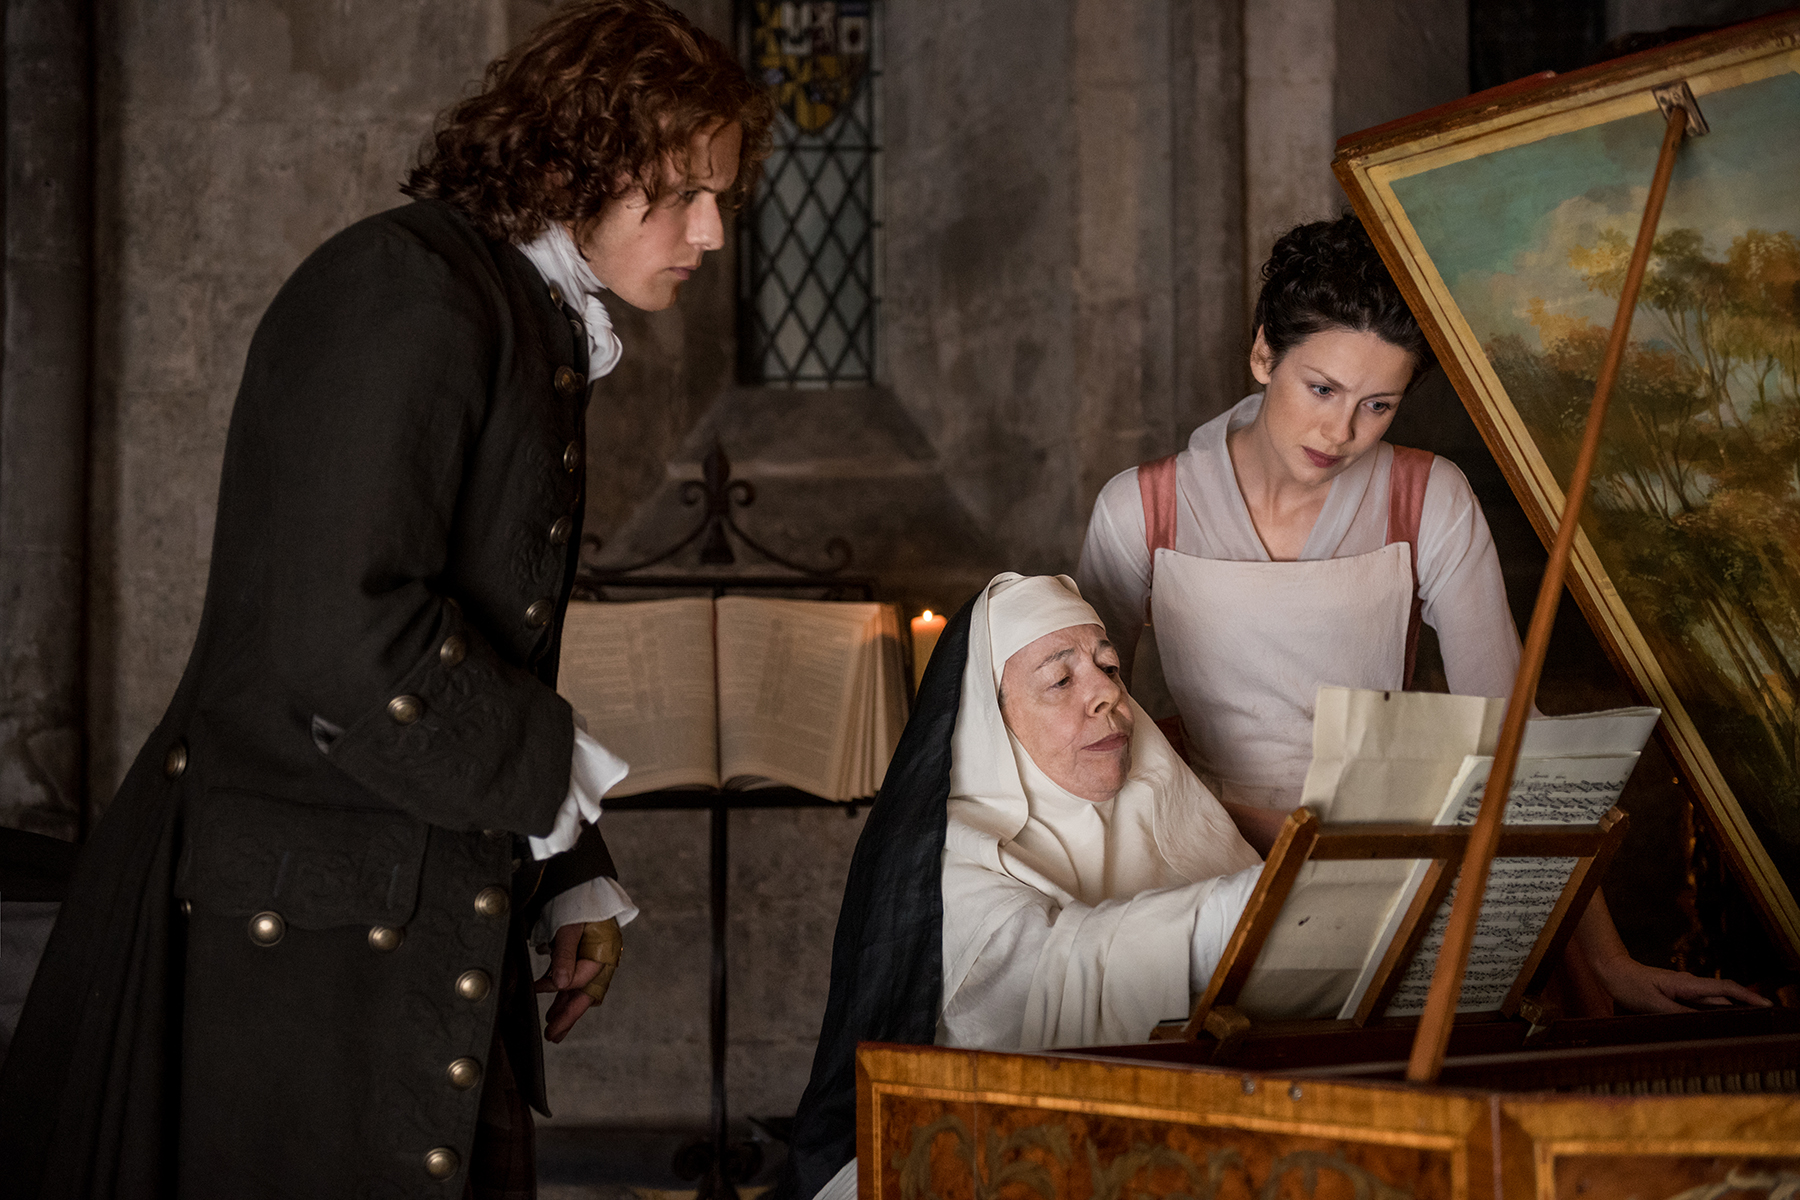 Sam Heughan as Jamie Fraser, Frances de la Tour as Mother Hildegarde and Caitriona Balfe as Claire Fraser in 'Outlander' Season 2, Episode 3 — 'Useful Occupations and Deceptions'